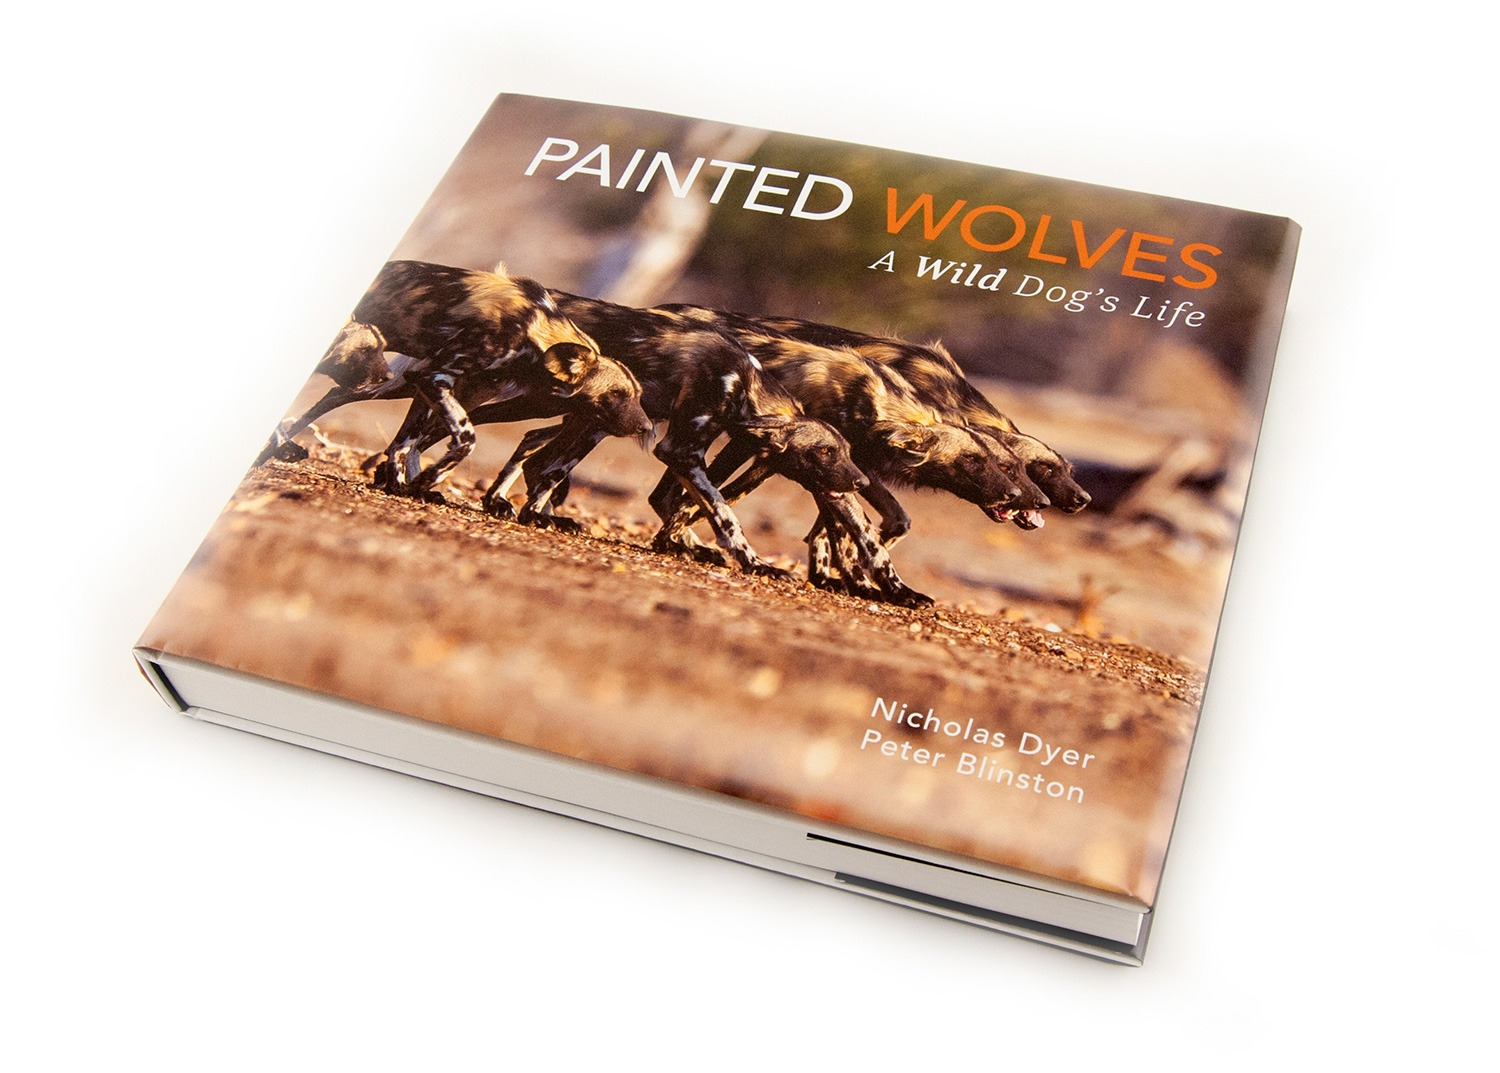 Launch of Painted Wolves: A Wild Dog's Life in the Netherlands